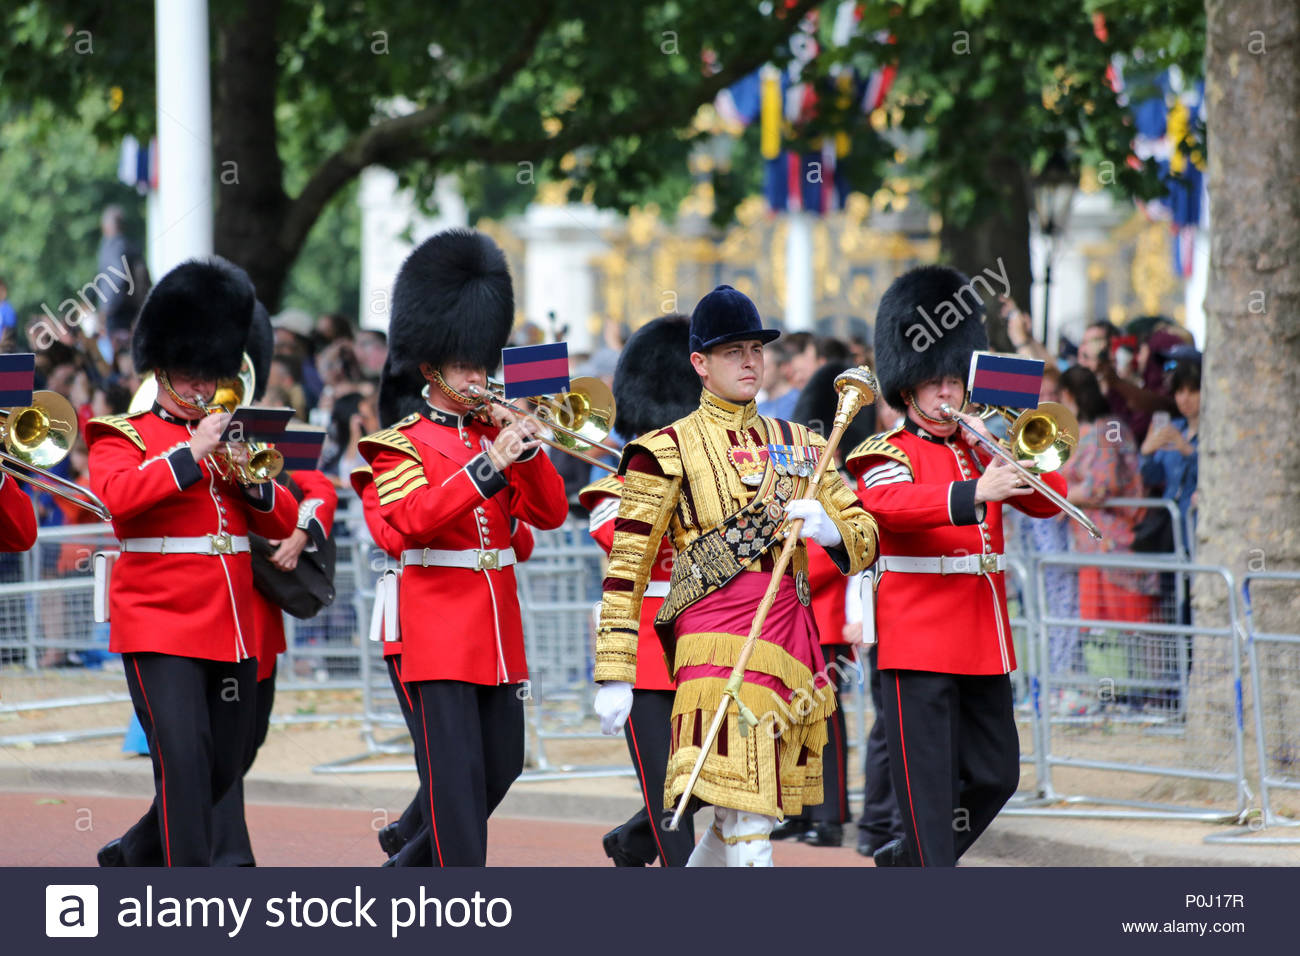 London, UK. 9th June, 2018. Senior Drum Major Damien P Thomas of the Grenadier Guards leading members of the Band of the Welsh Guards marching along The Mall. The 2018 Trooping the Colour / Queen's Birthday Parade. Credit: Katie Chan/Alamy Live News Stock Photo